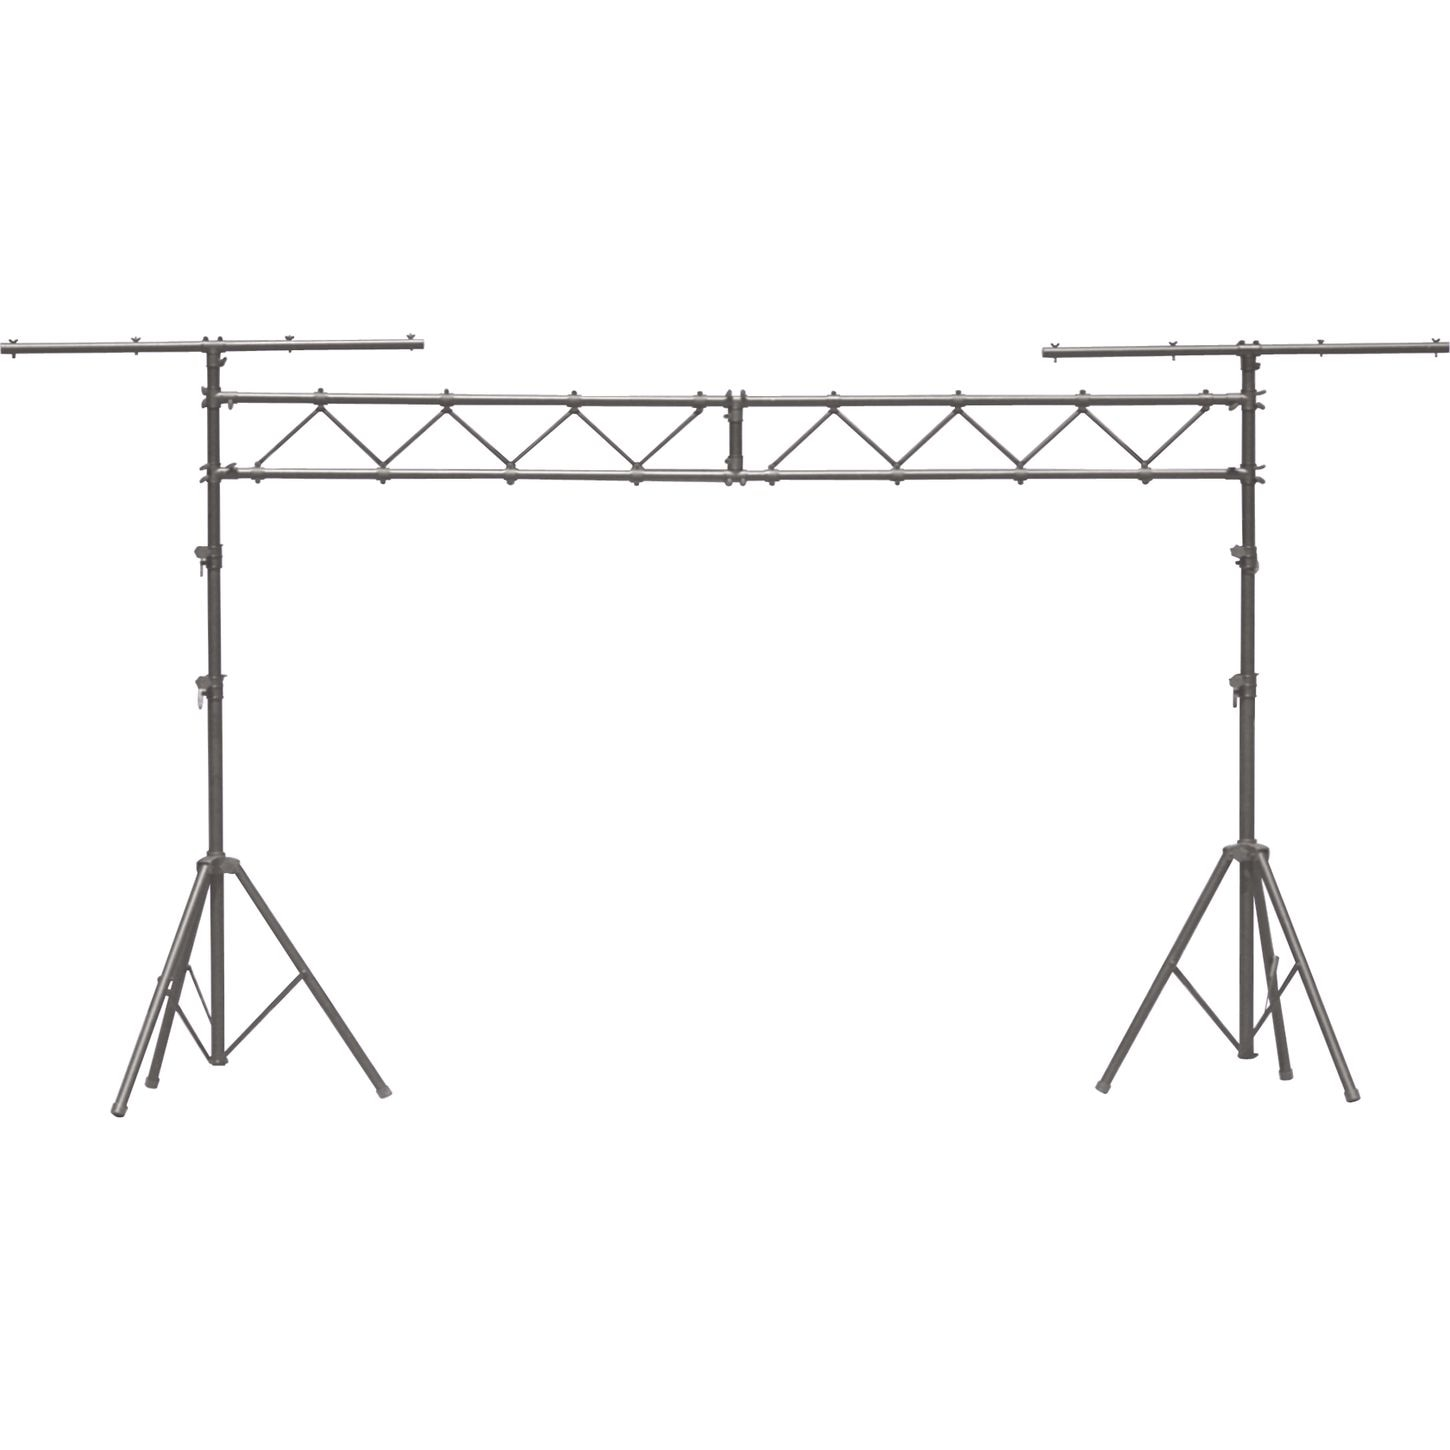 On Stage Stands Ls7730 Lighting Stand With Truss